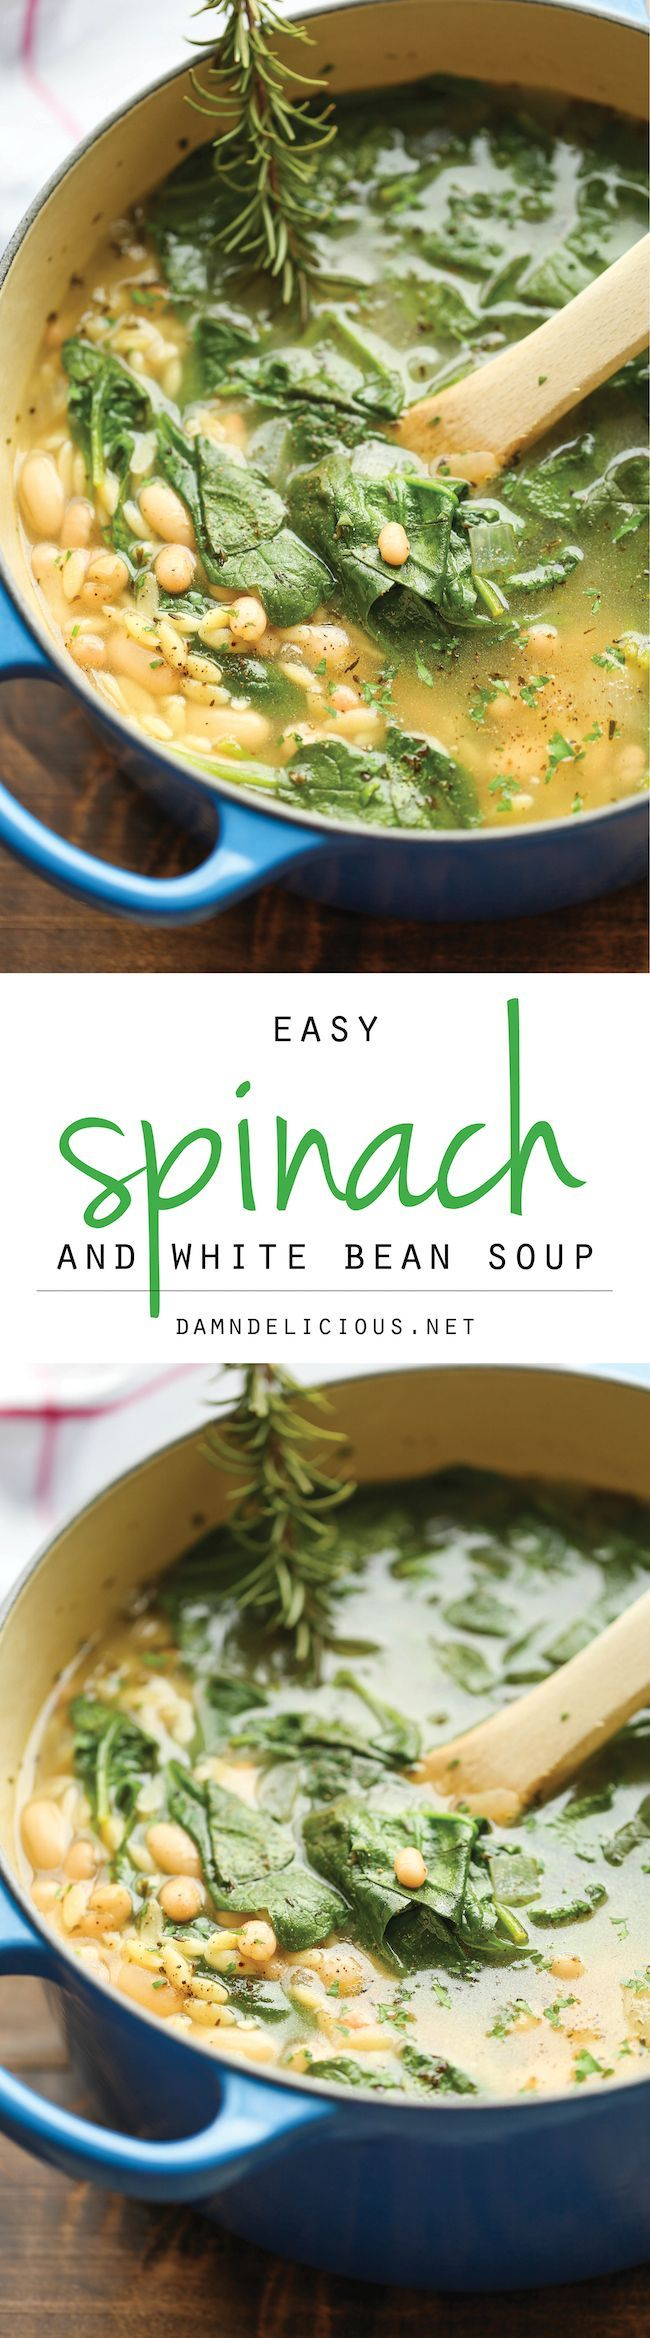 Spinach & White Bean Soup // healthy, hearty, comforting, make a big batch for meals, work lunches & snacks #protein